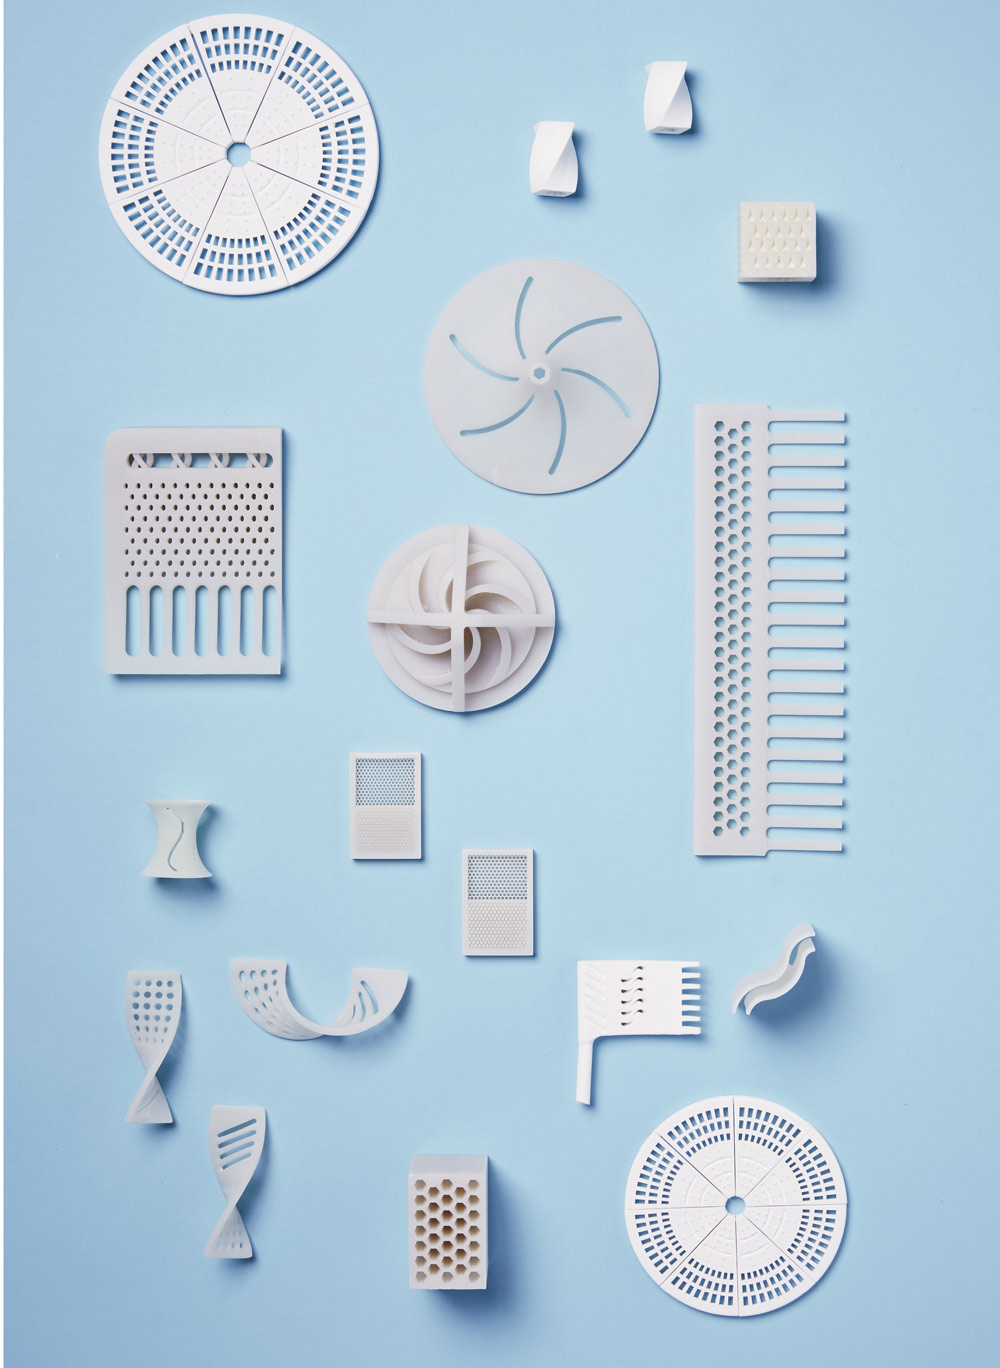 Various objects printed using a DDM Systems technology